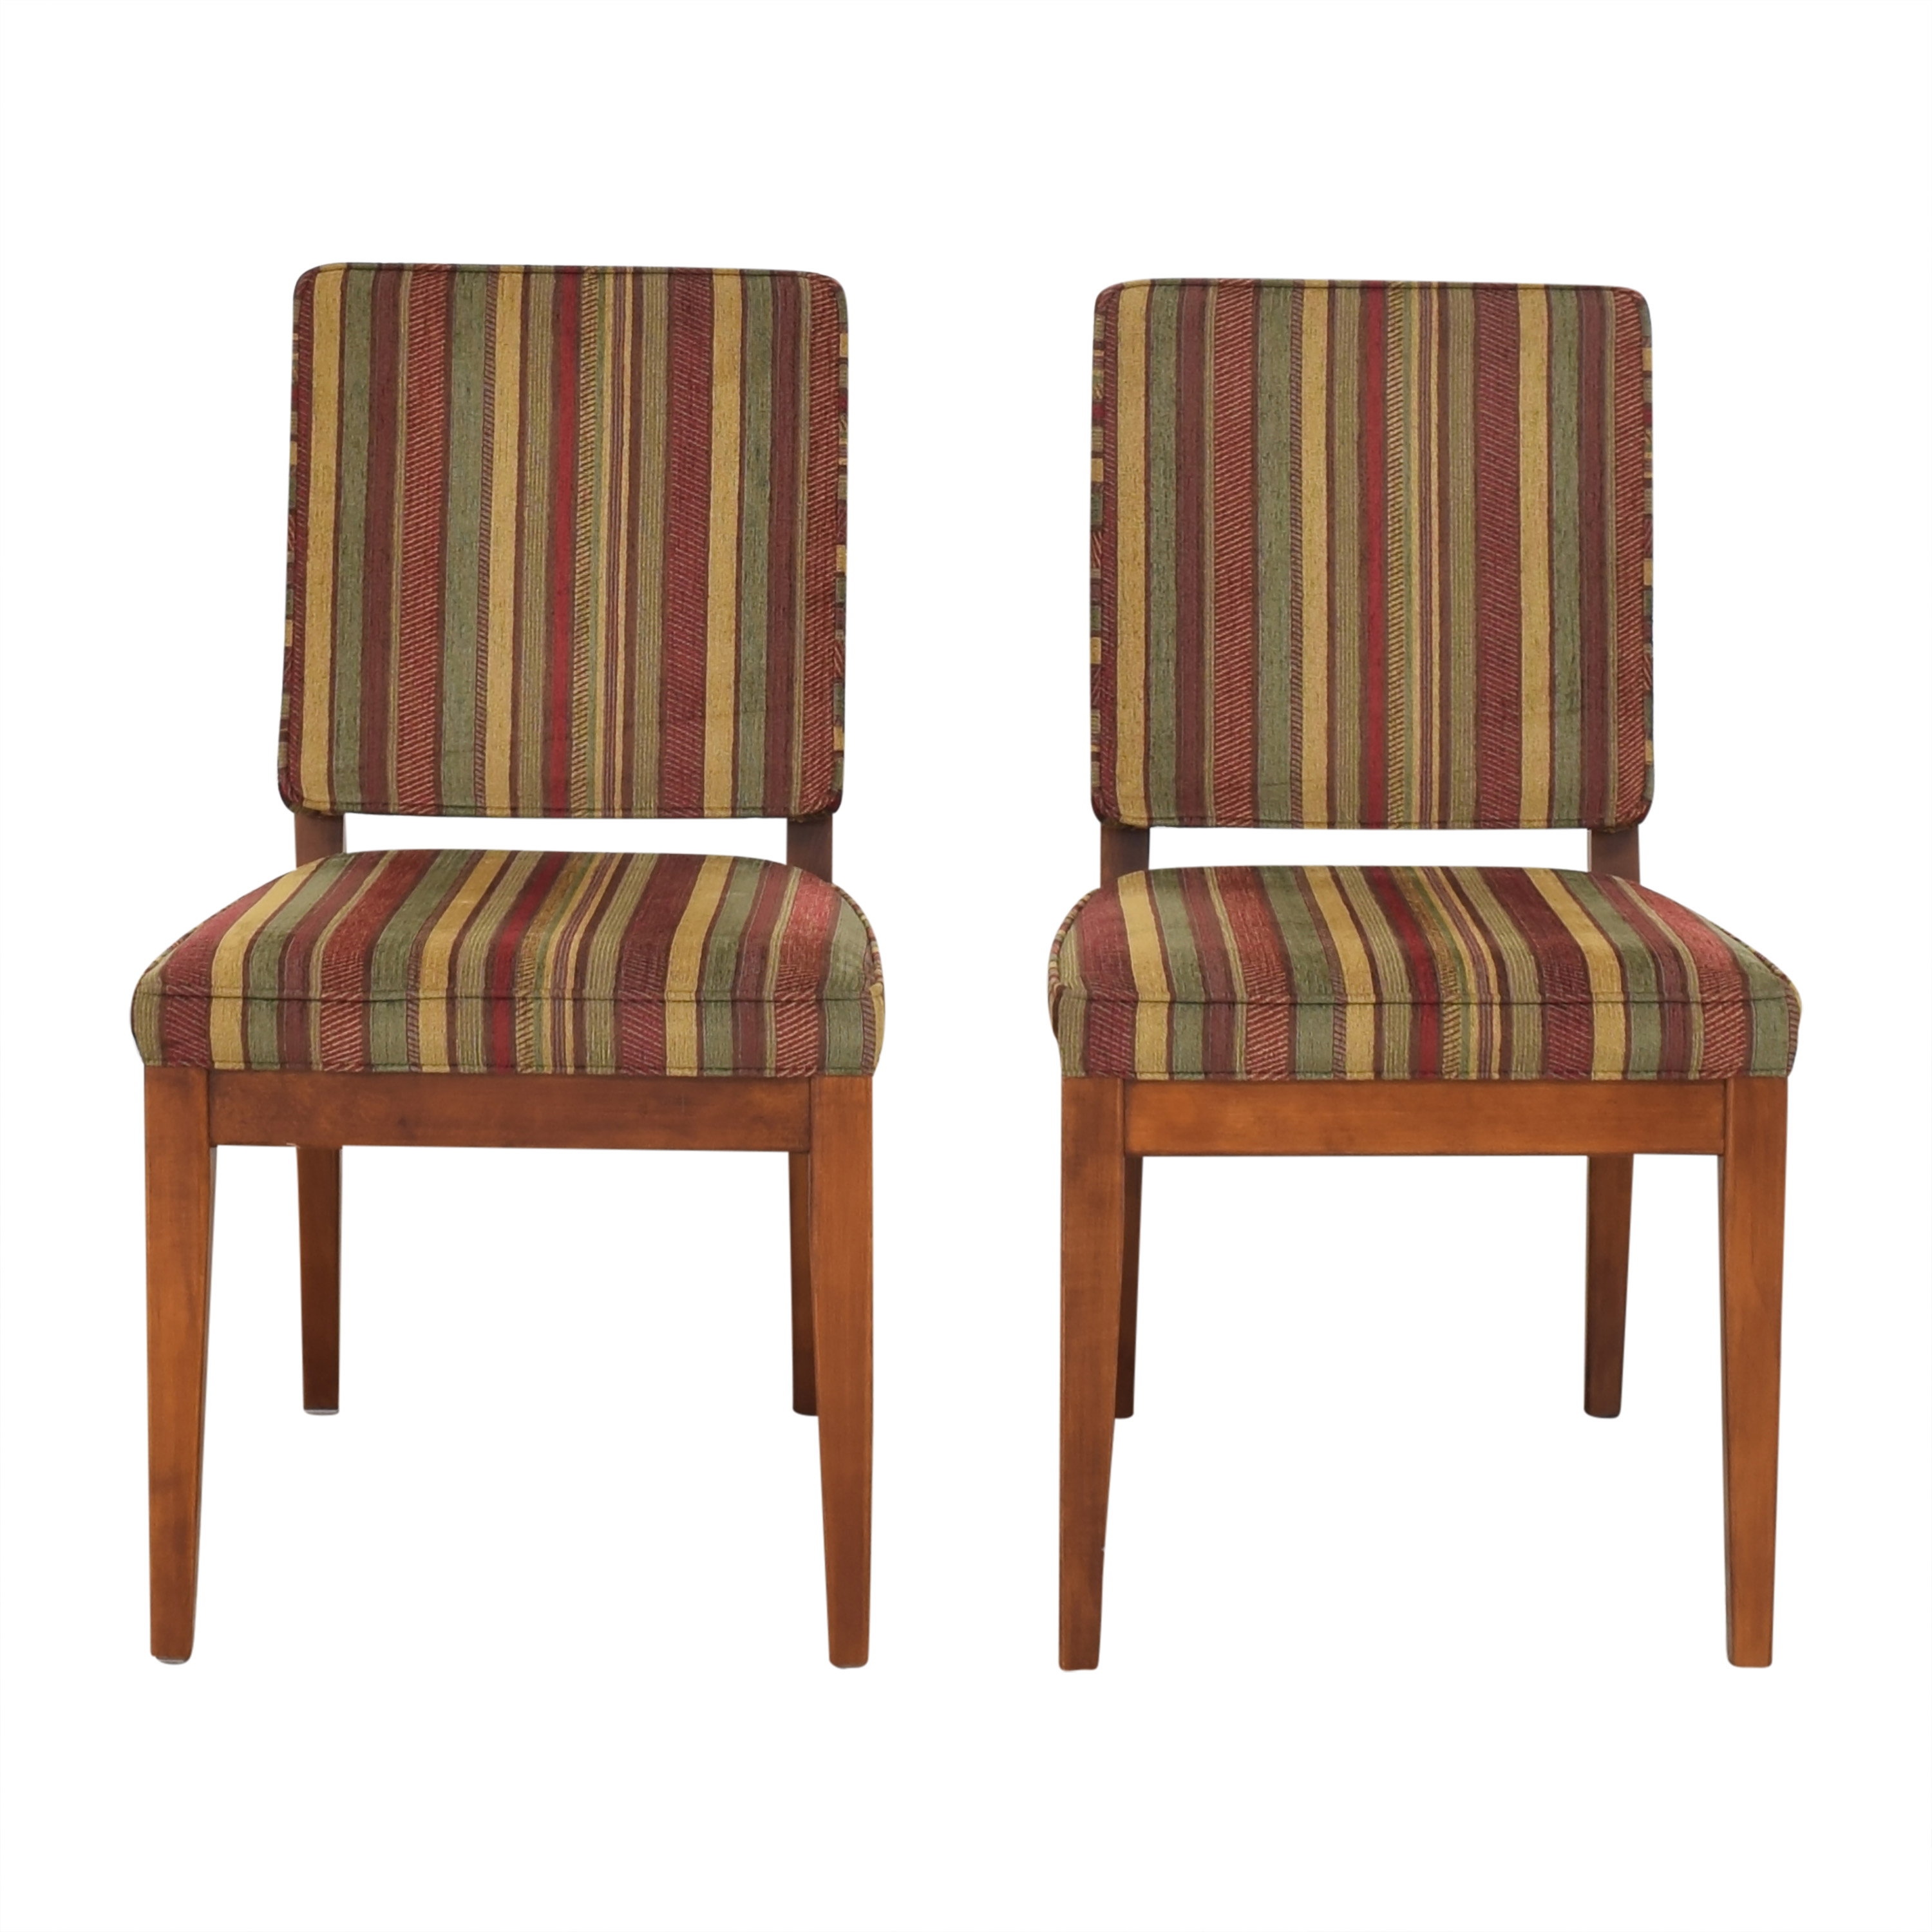 Stickley Furniture Stickley Furniture Carmel Striped Side Chairs second hand